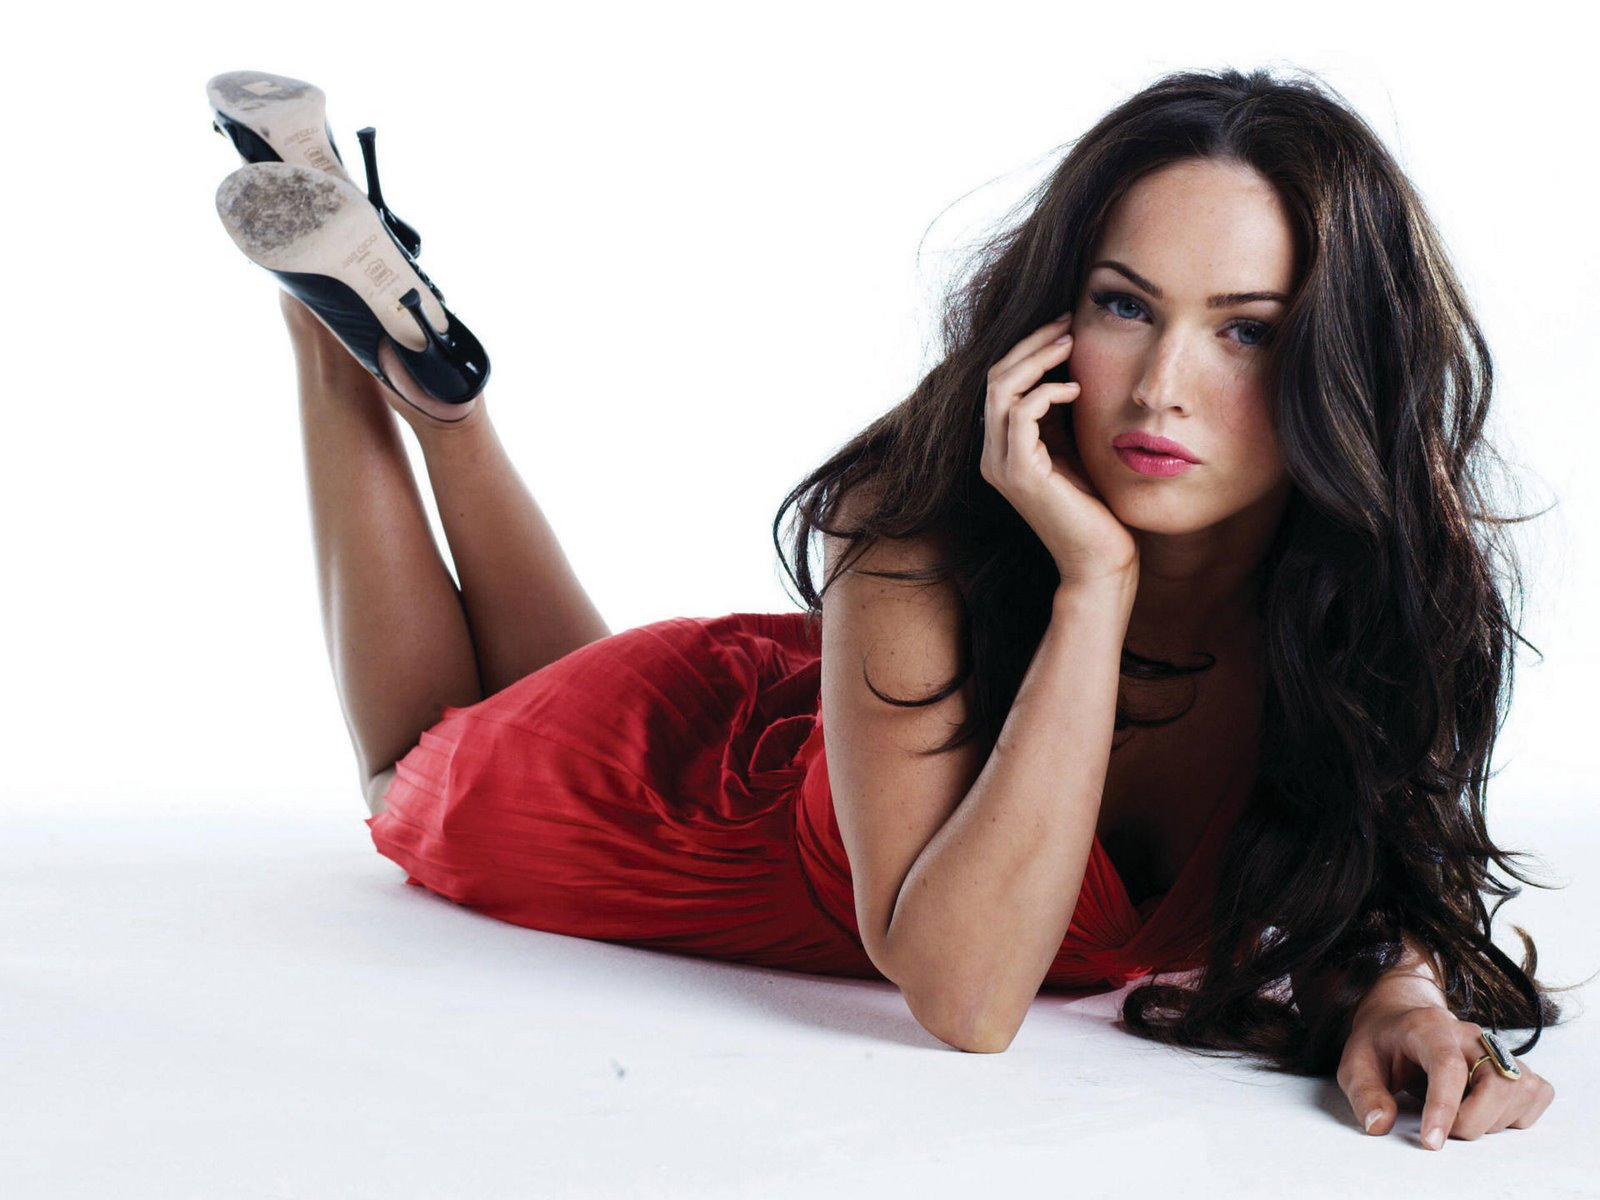 image Megan fox transformers revenge of the fallen Part 5